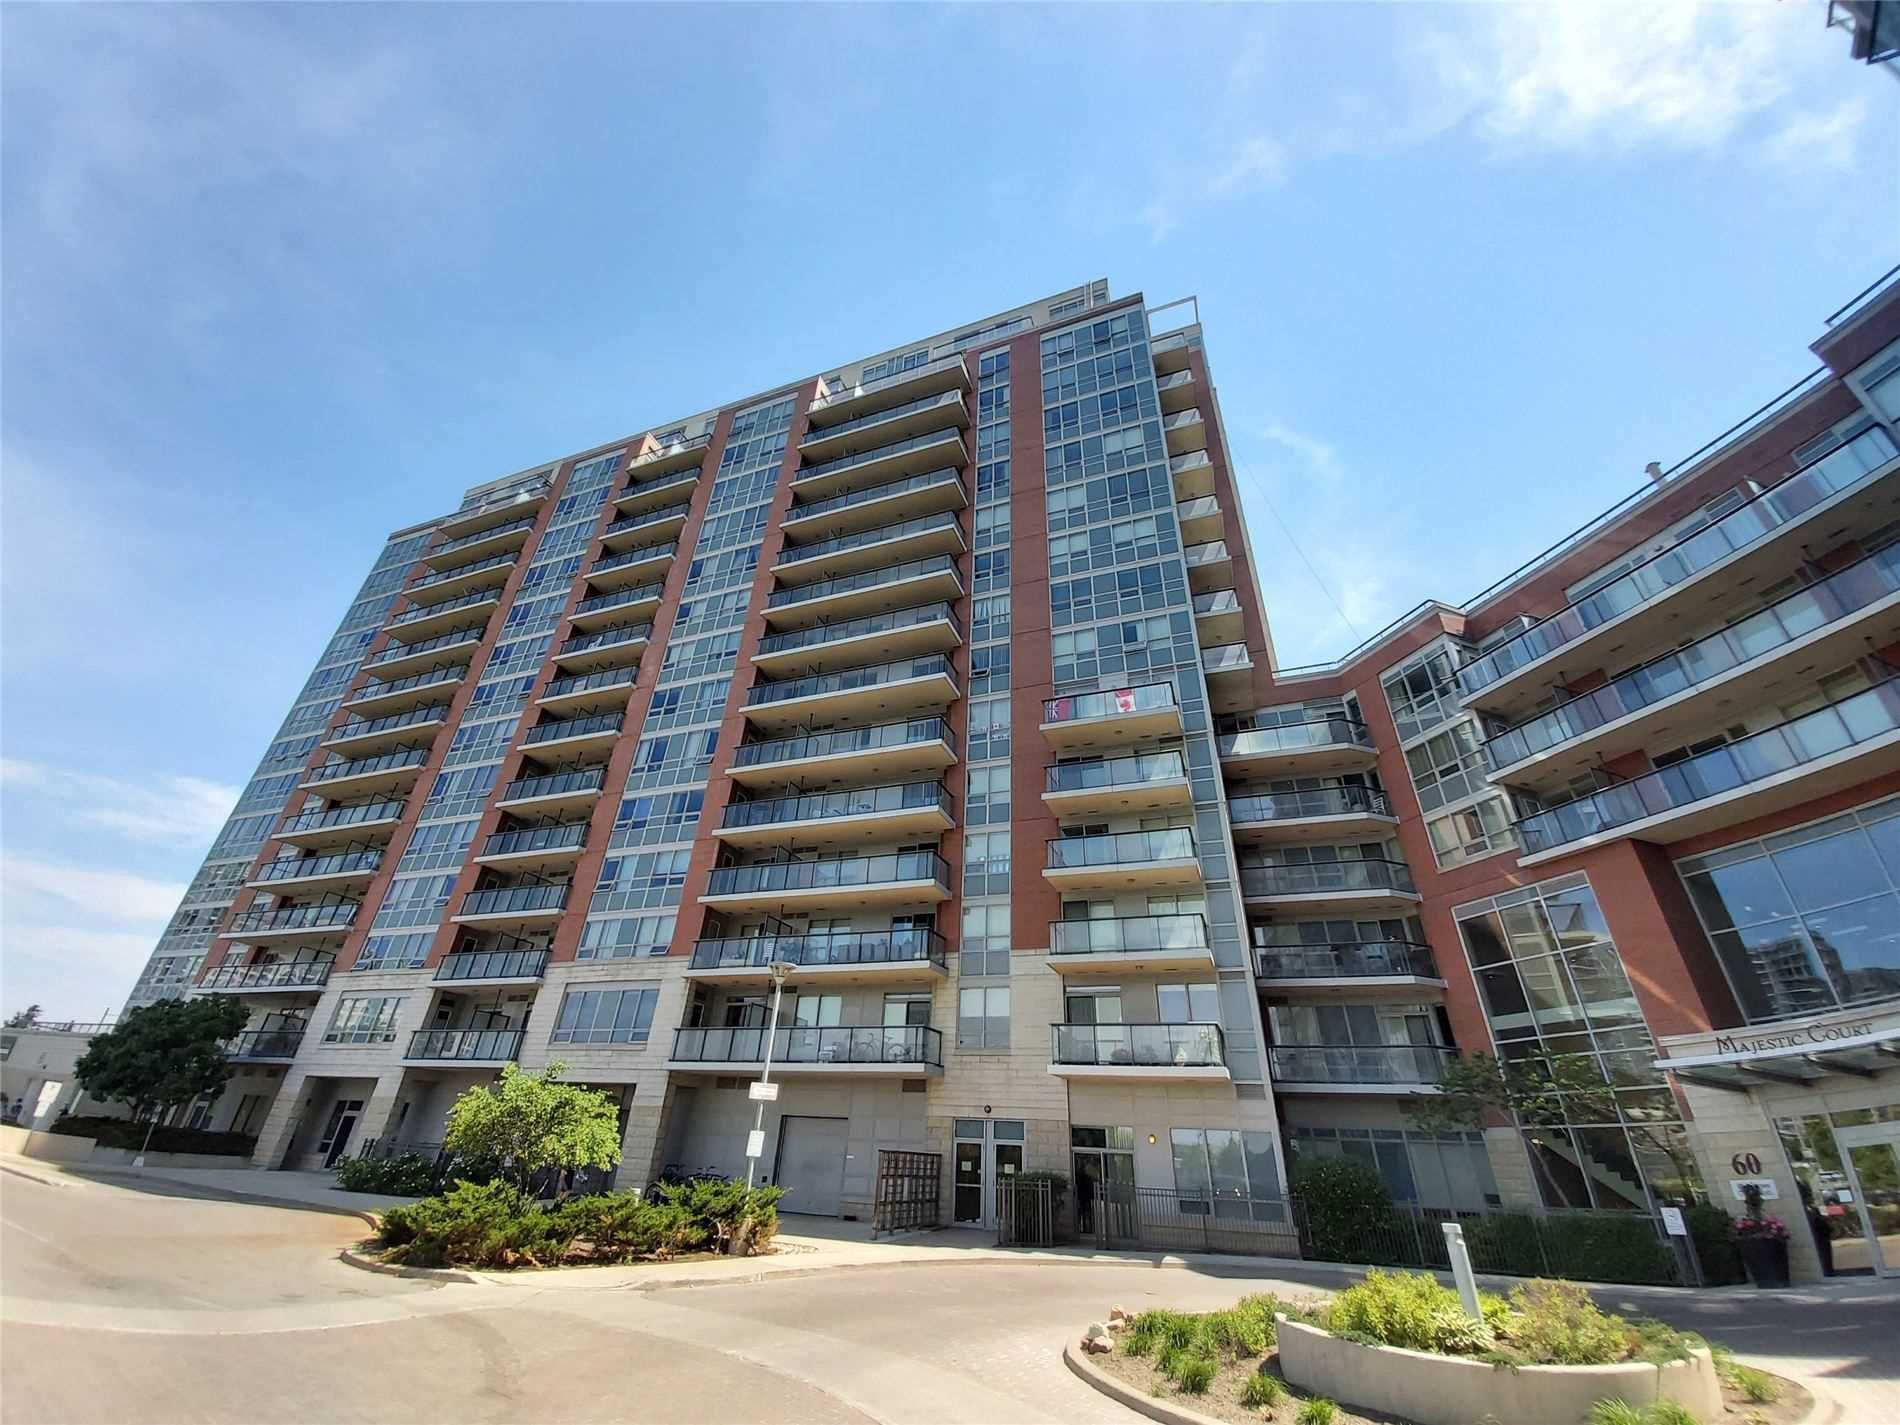 60 South Town Centre Blvd, unit 720 for sale in Toronto - image #1